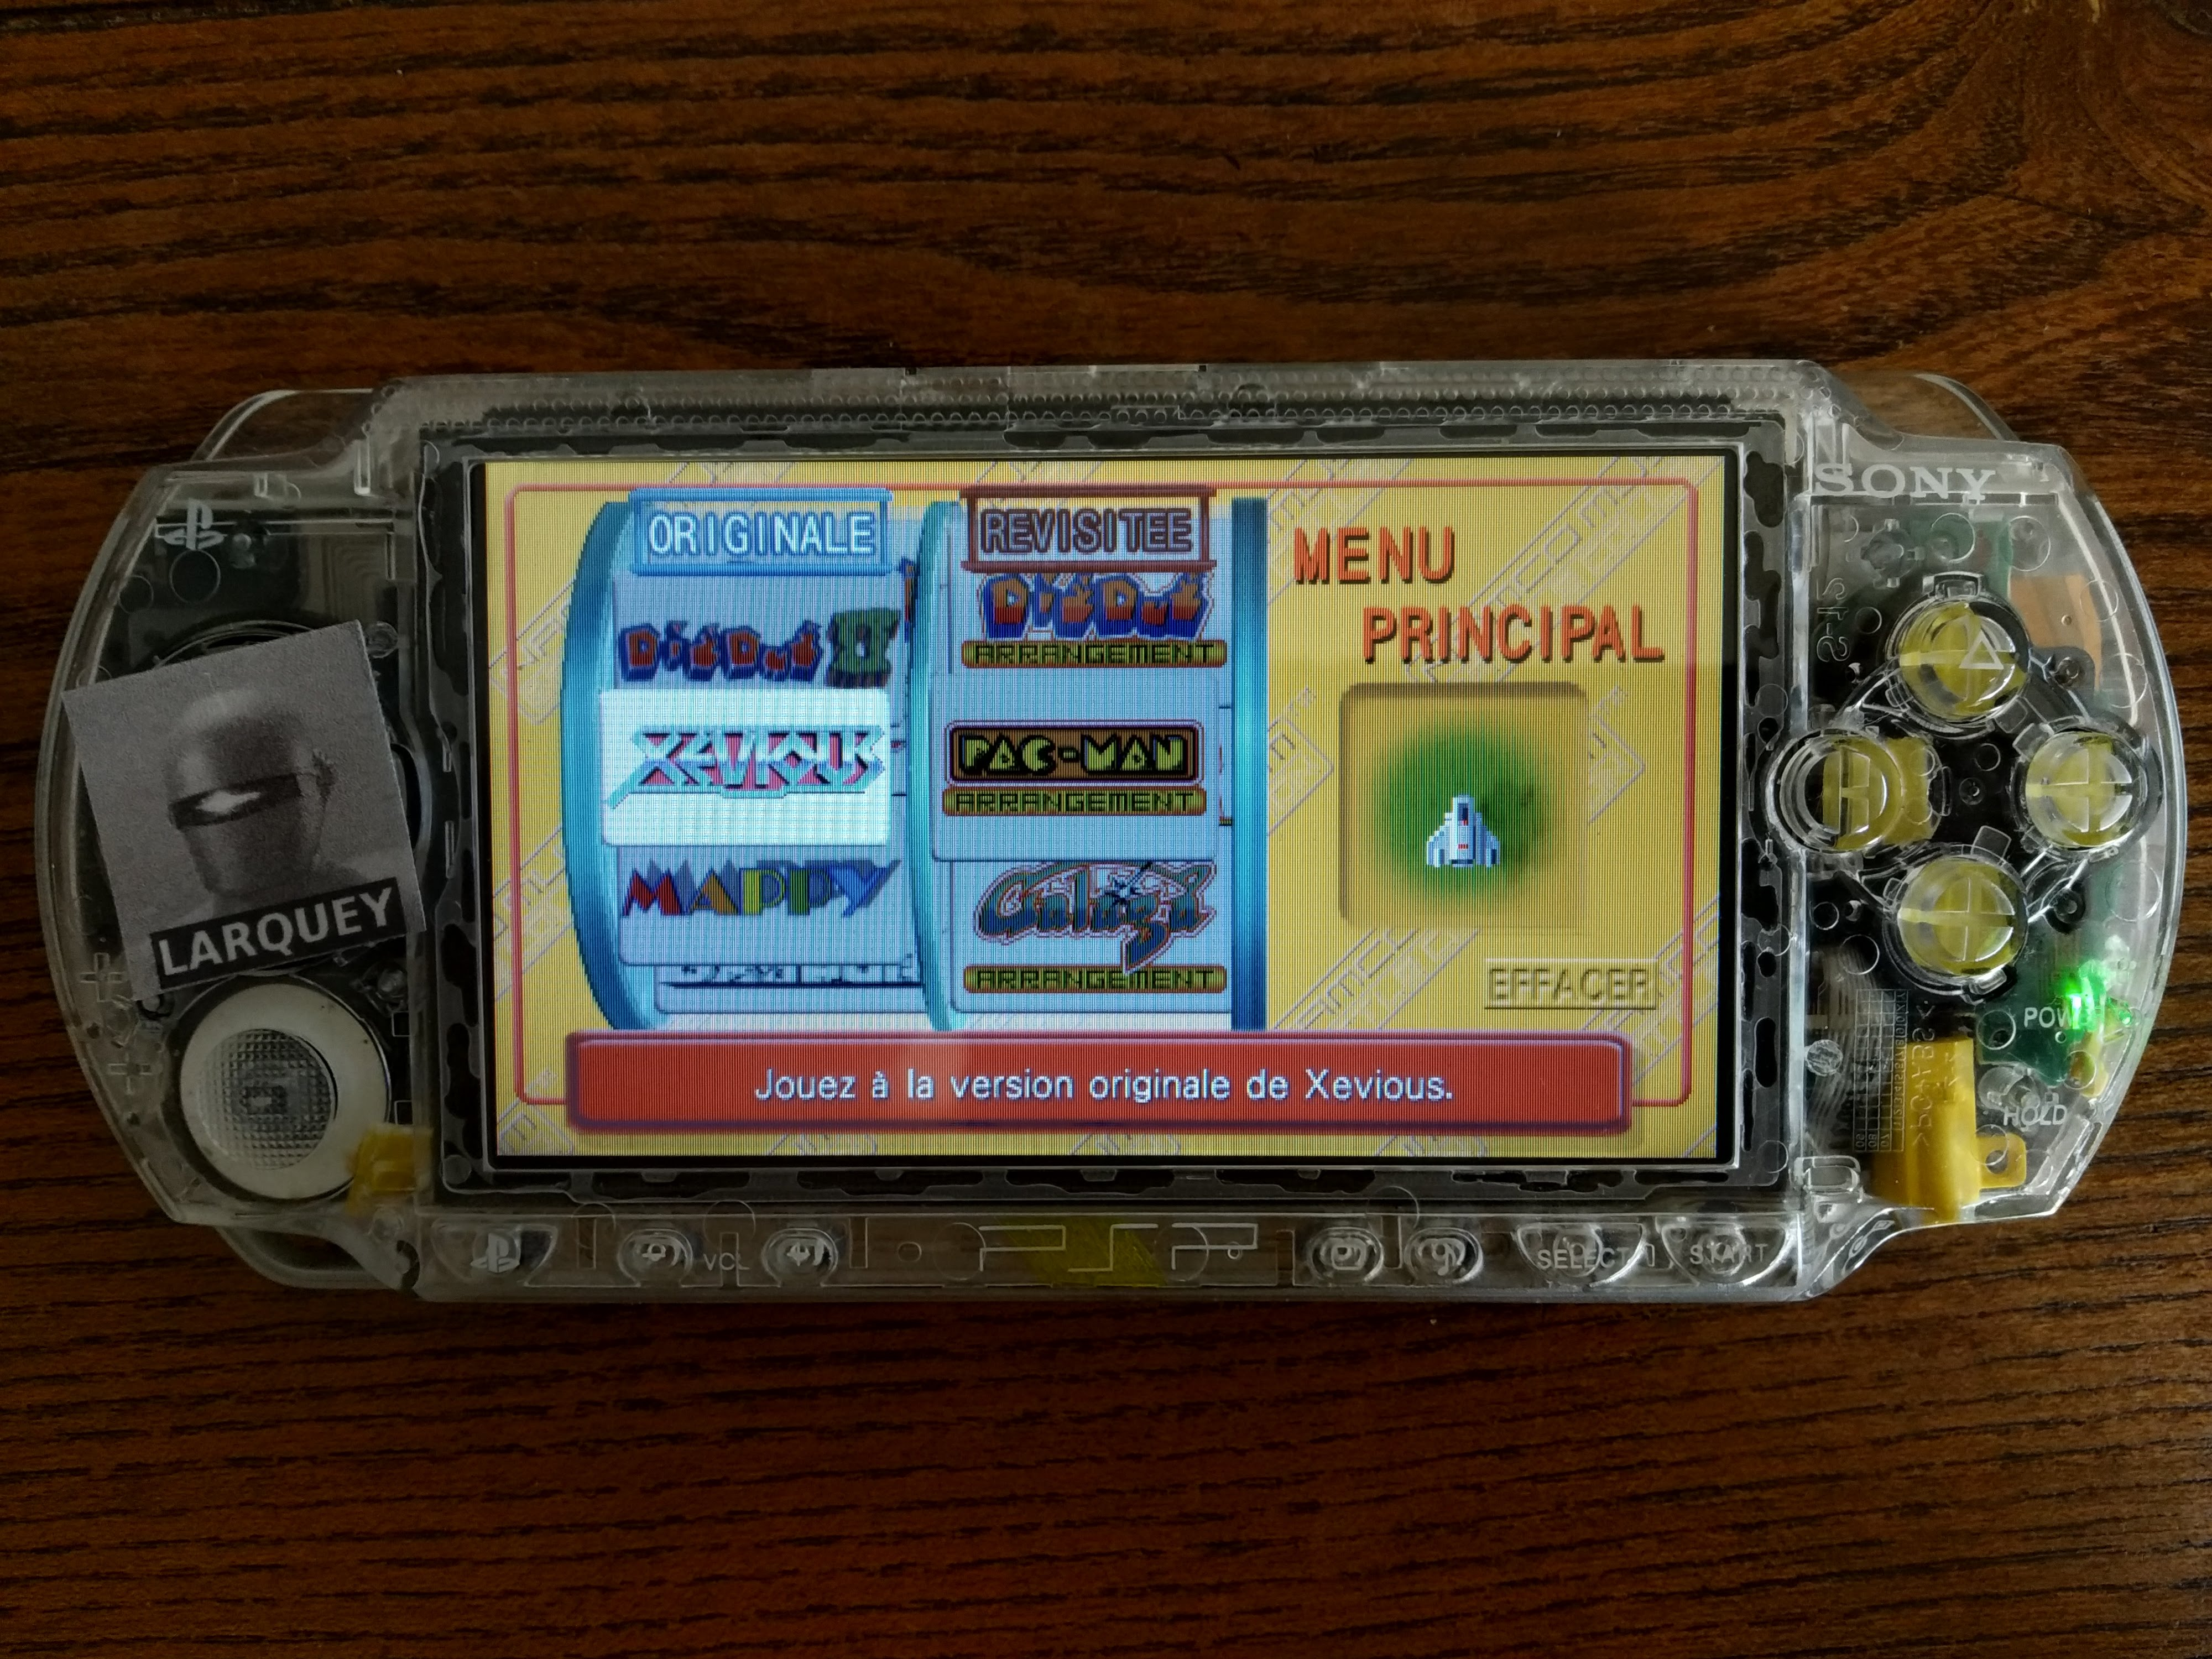 Larquey: Namco Museum: Battle Collection: Xevious (PSP) 37,110 points on 2020-07-27 09:12:07